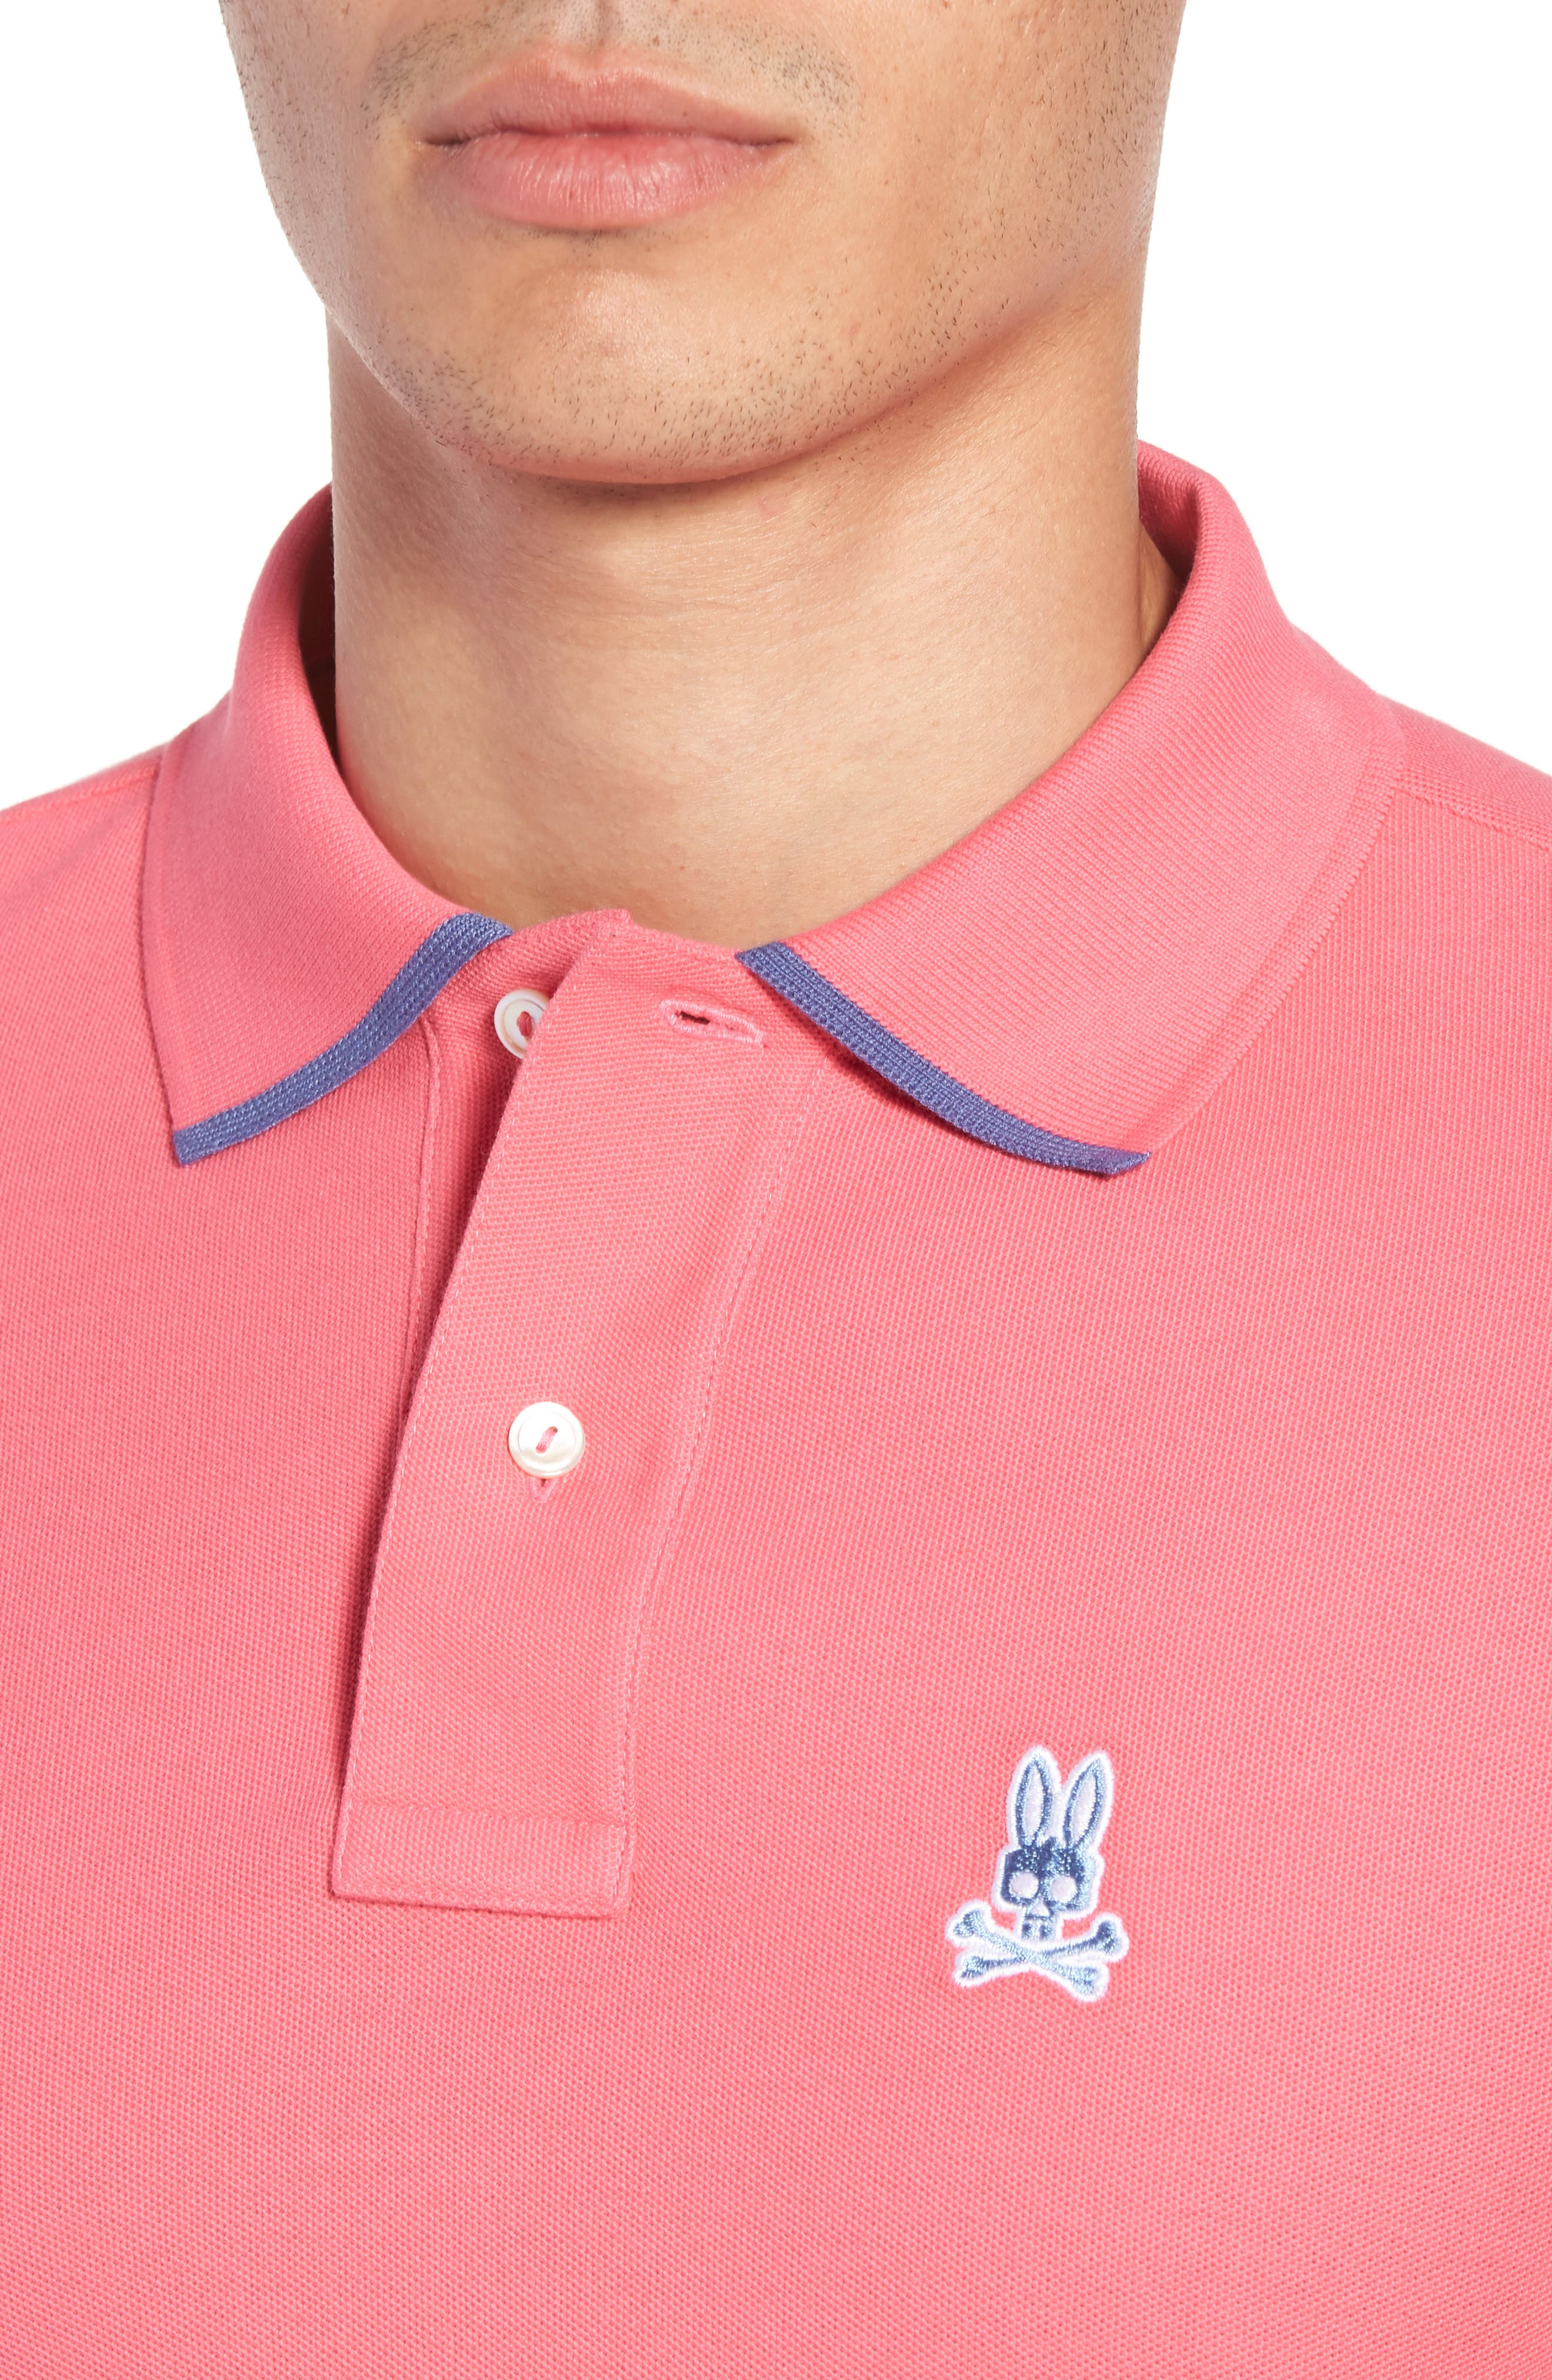 Sandford Polo,                             Alternate thumbnail 4, color,                             Hot Pink